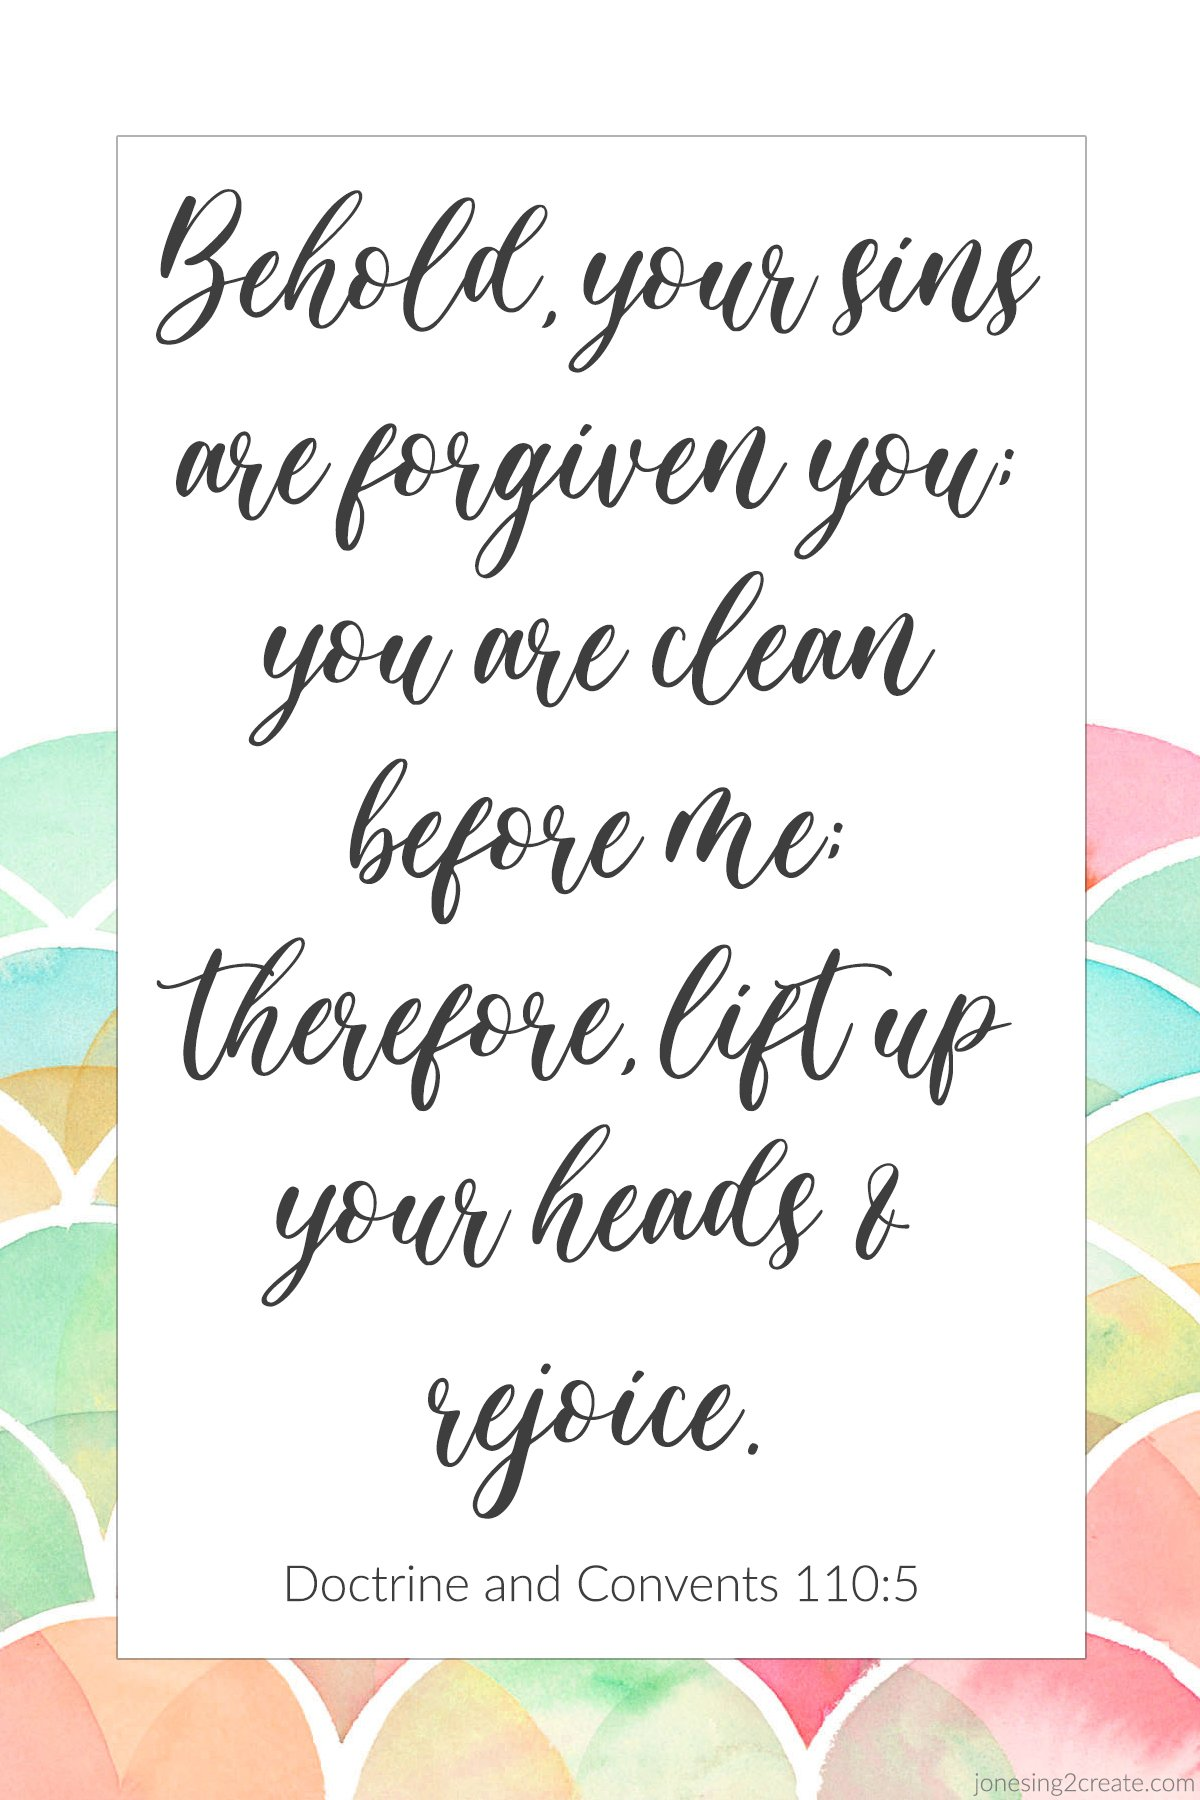 Behold, your sins are forgiven you; you are clean before me; therefore, lift up your heads and rejoice